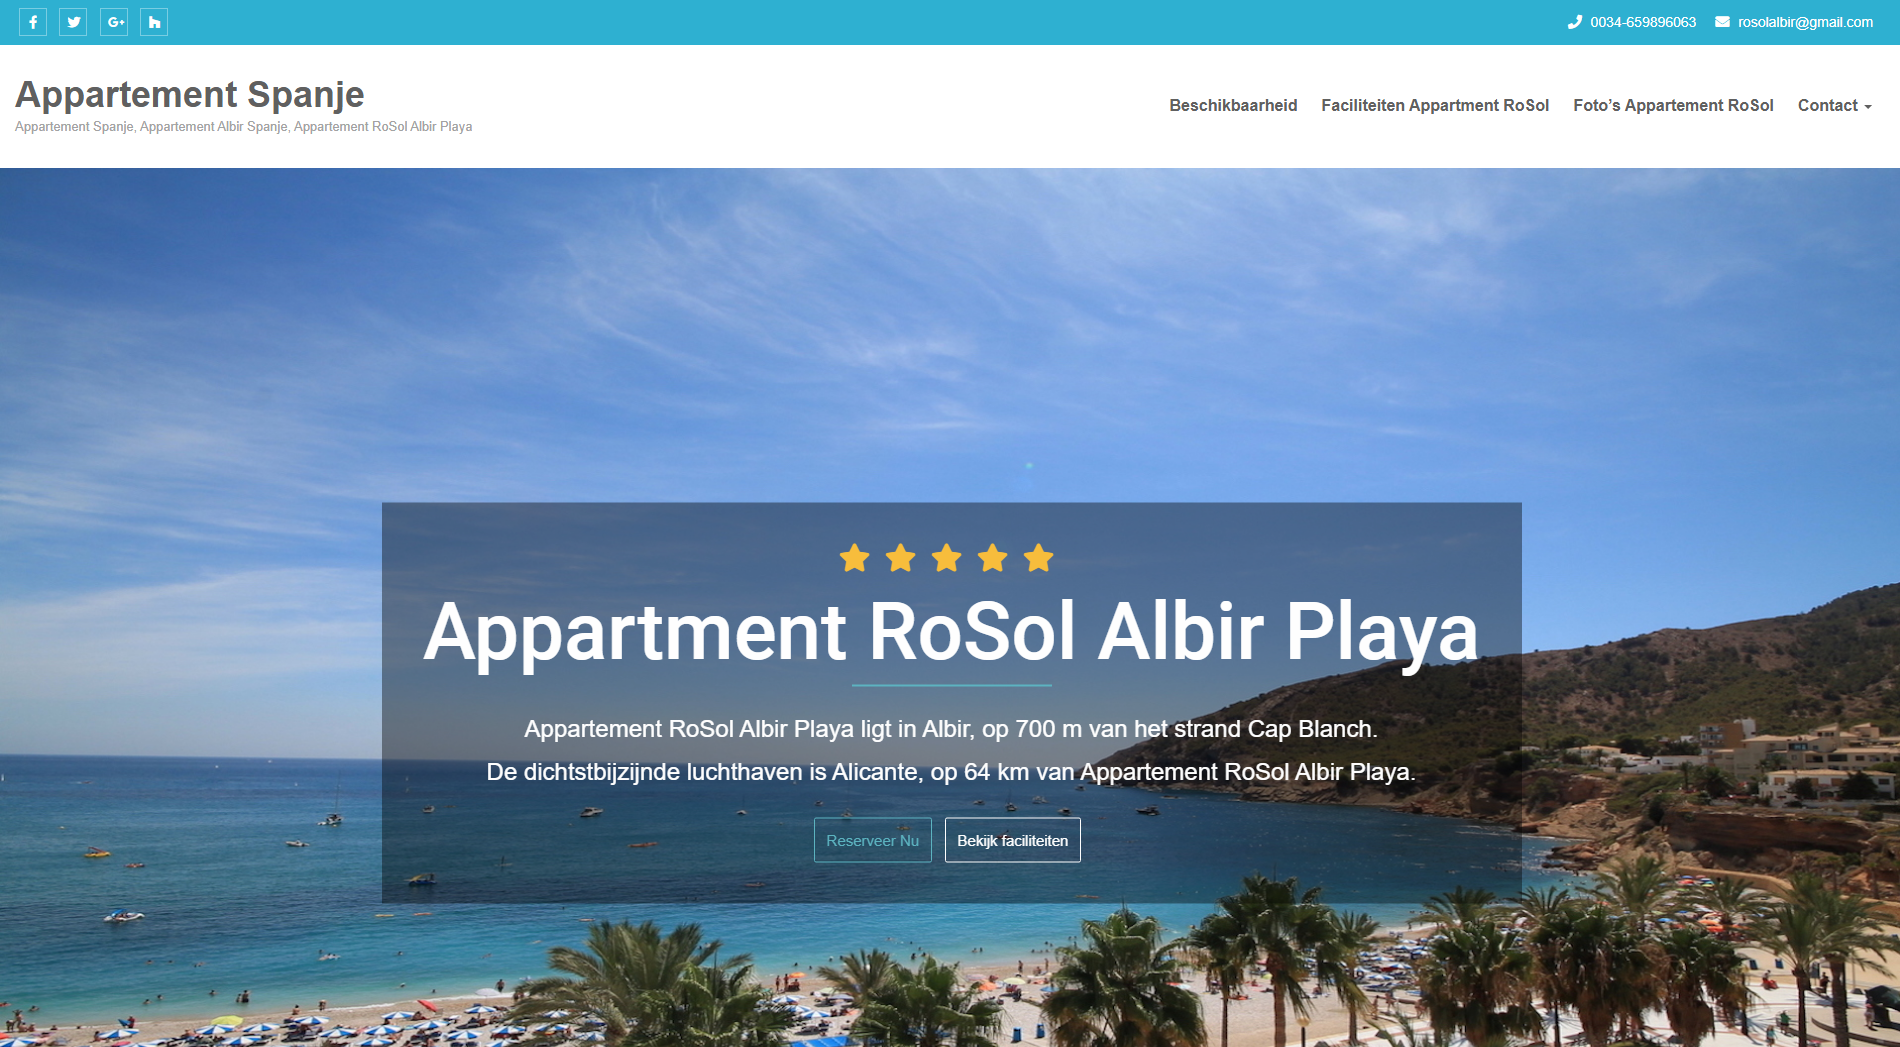 Appartement Spanje RoSol, airbnb website. Referenties onlinewebshop.eu